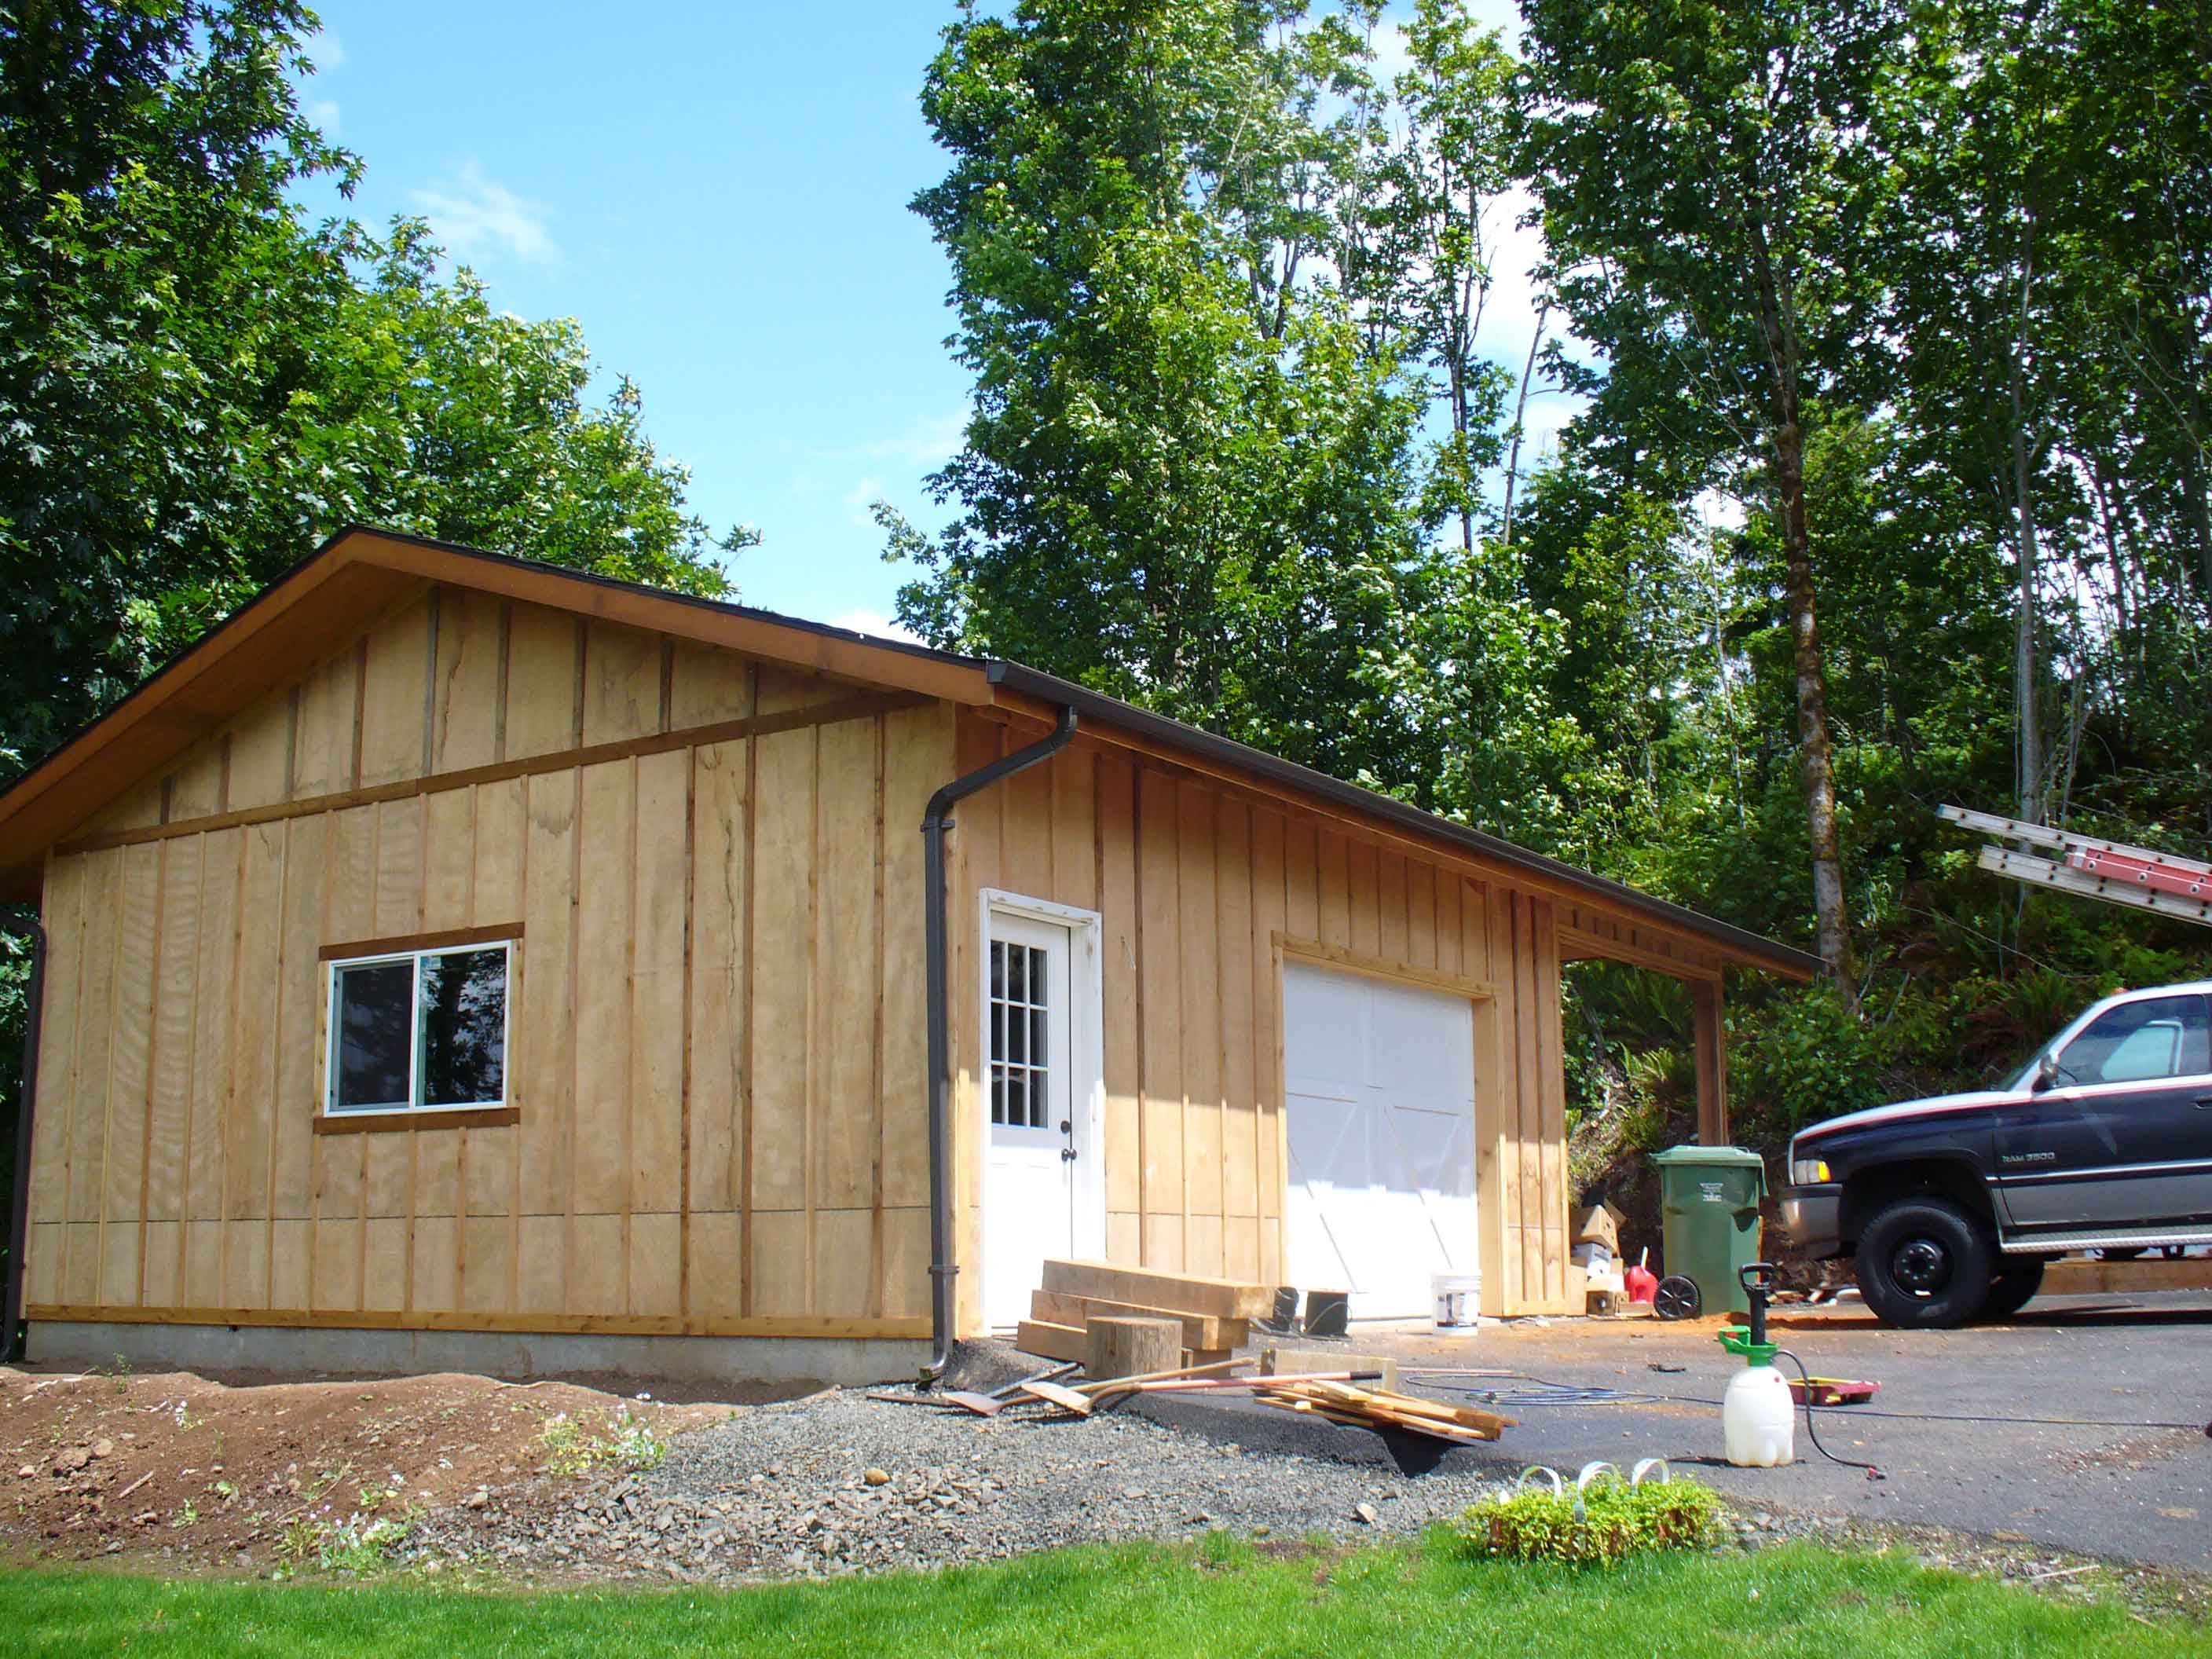 Garage with wood siding